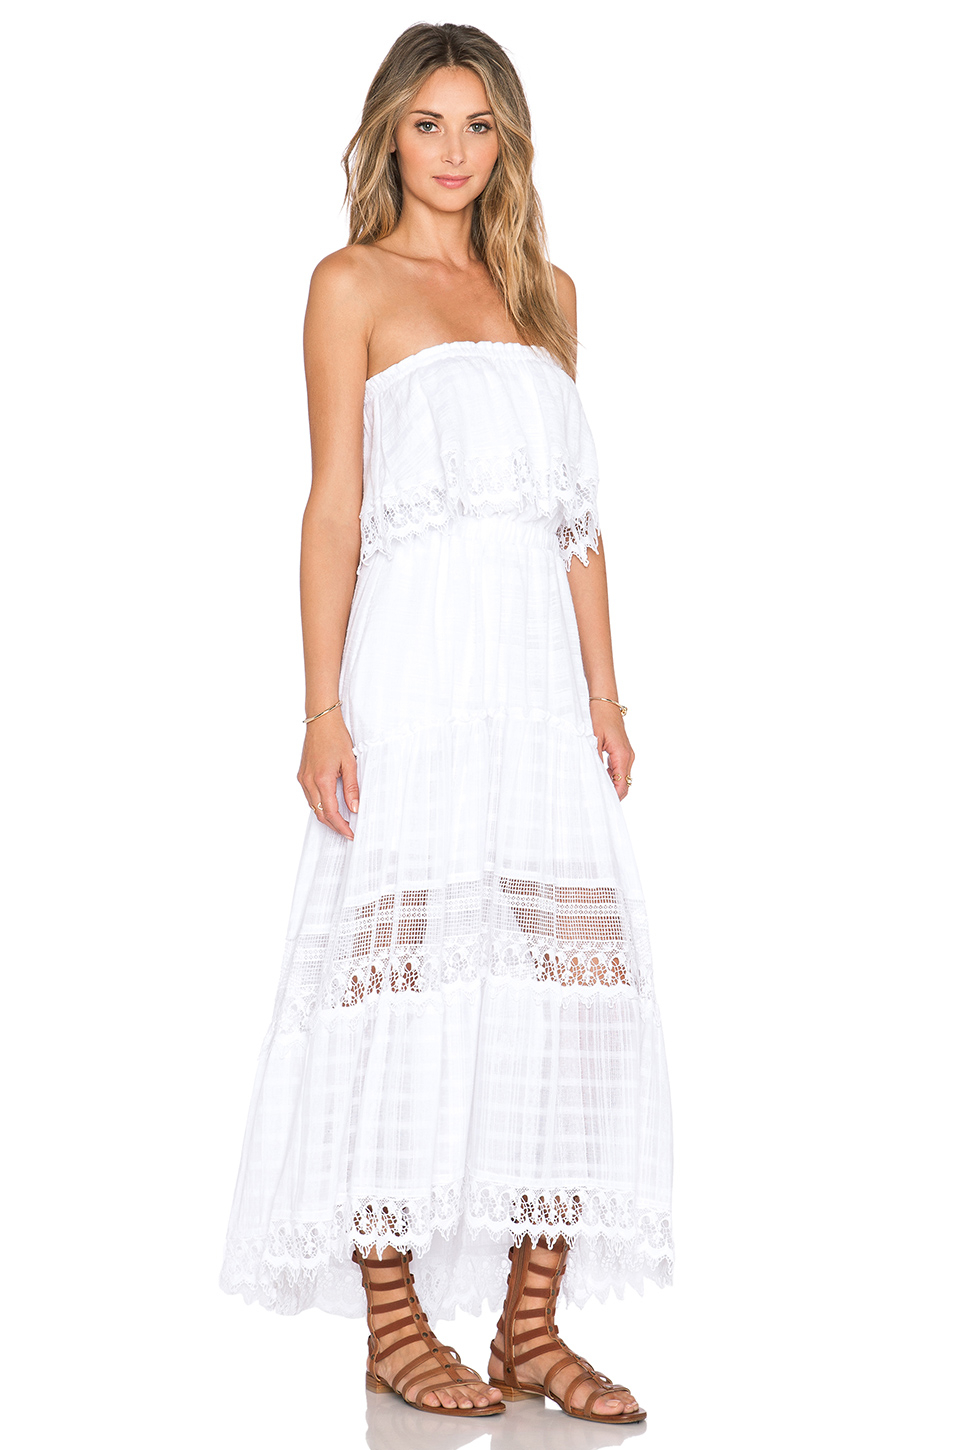 Gypsy 05 Strapless Maxi Dress in White | Lyst